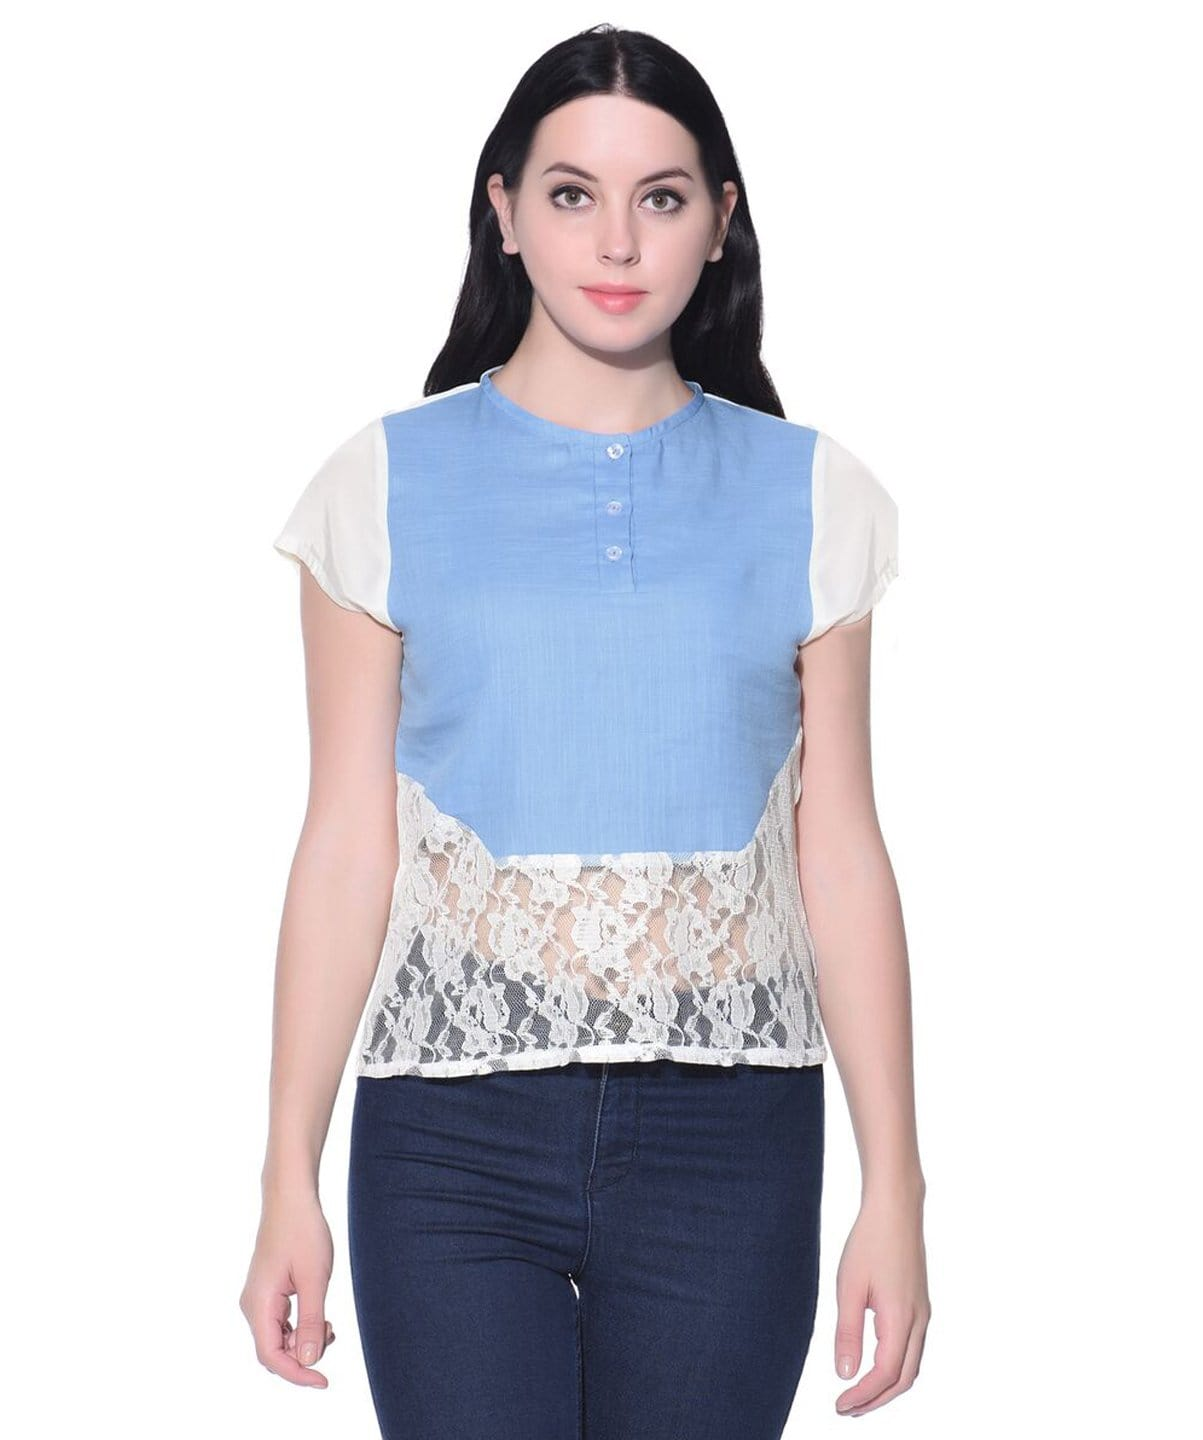 Solid Blue Lace Chambray and Lace Top - Uptownie